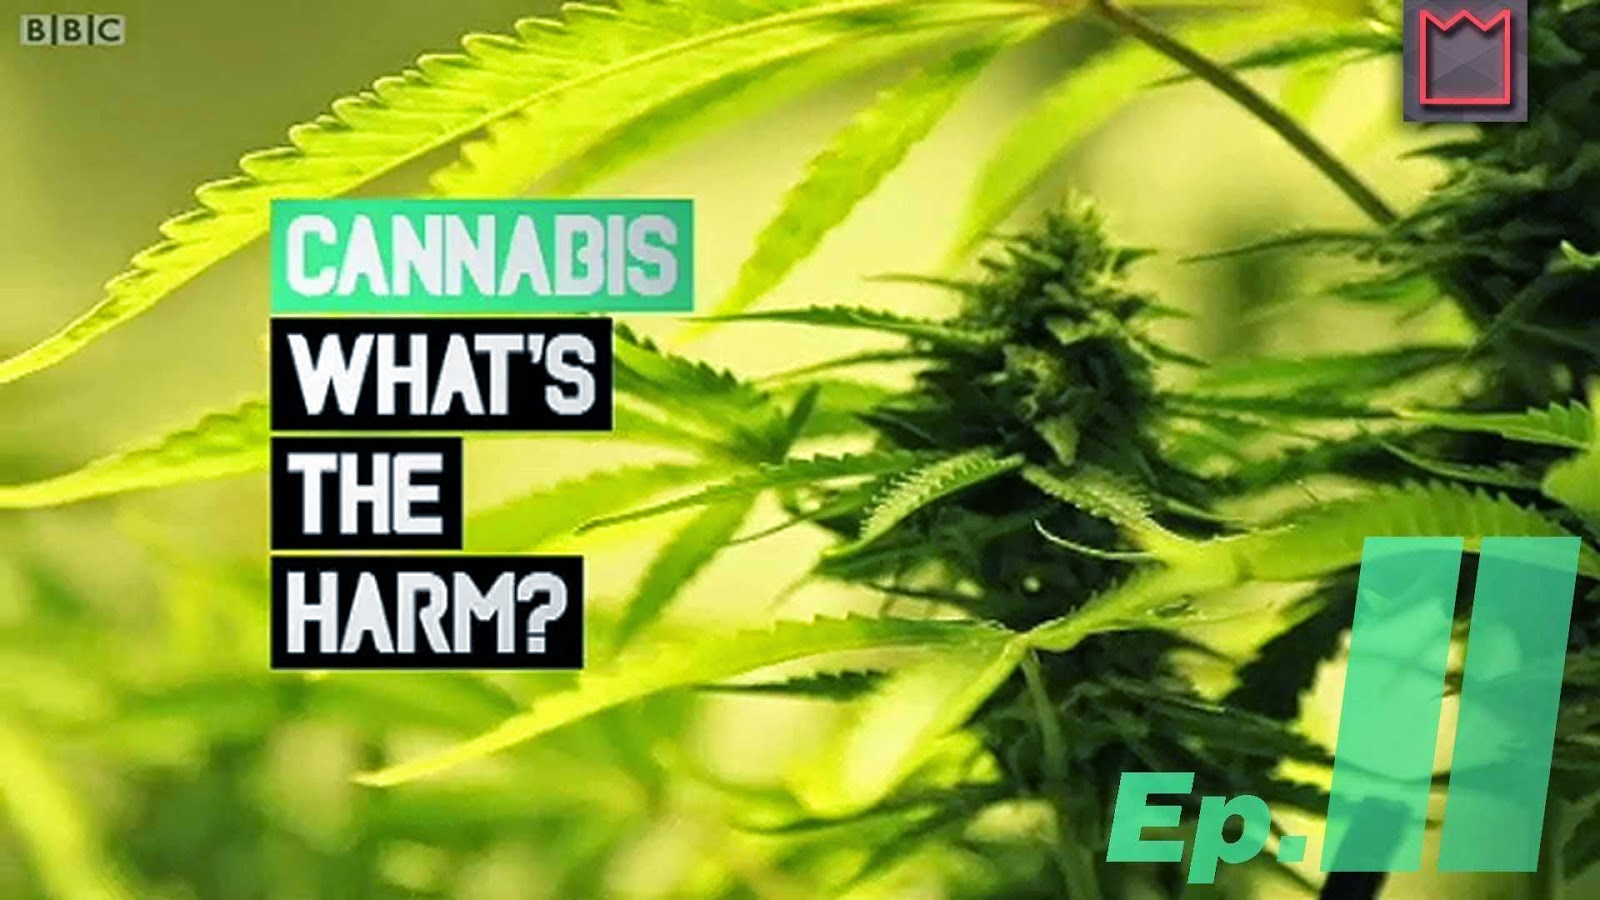 Cannabis: What's the Harm? kapak